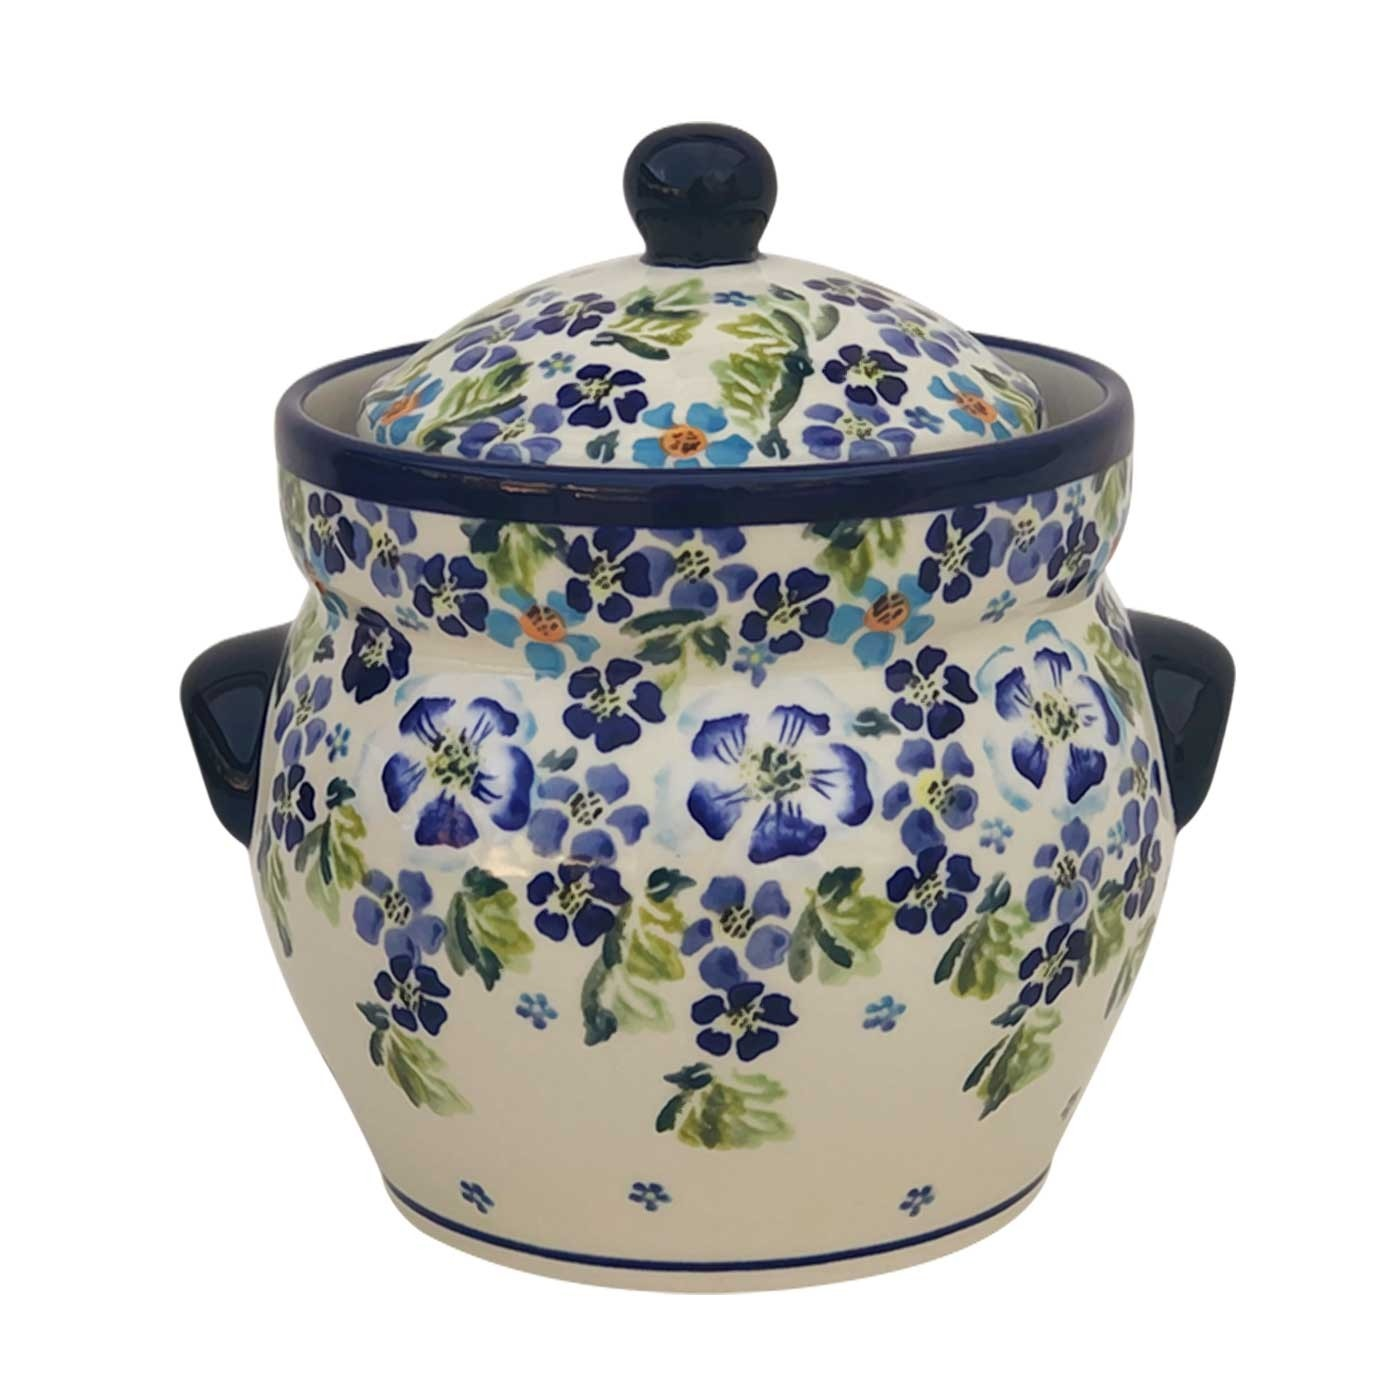 Pottery Avenue 7.6-cup Stoneware Canister - 1125-DU207 True Blues